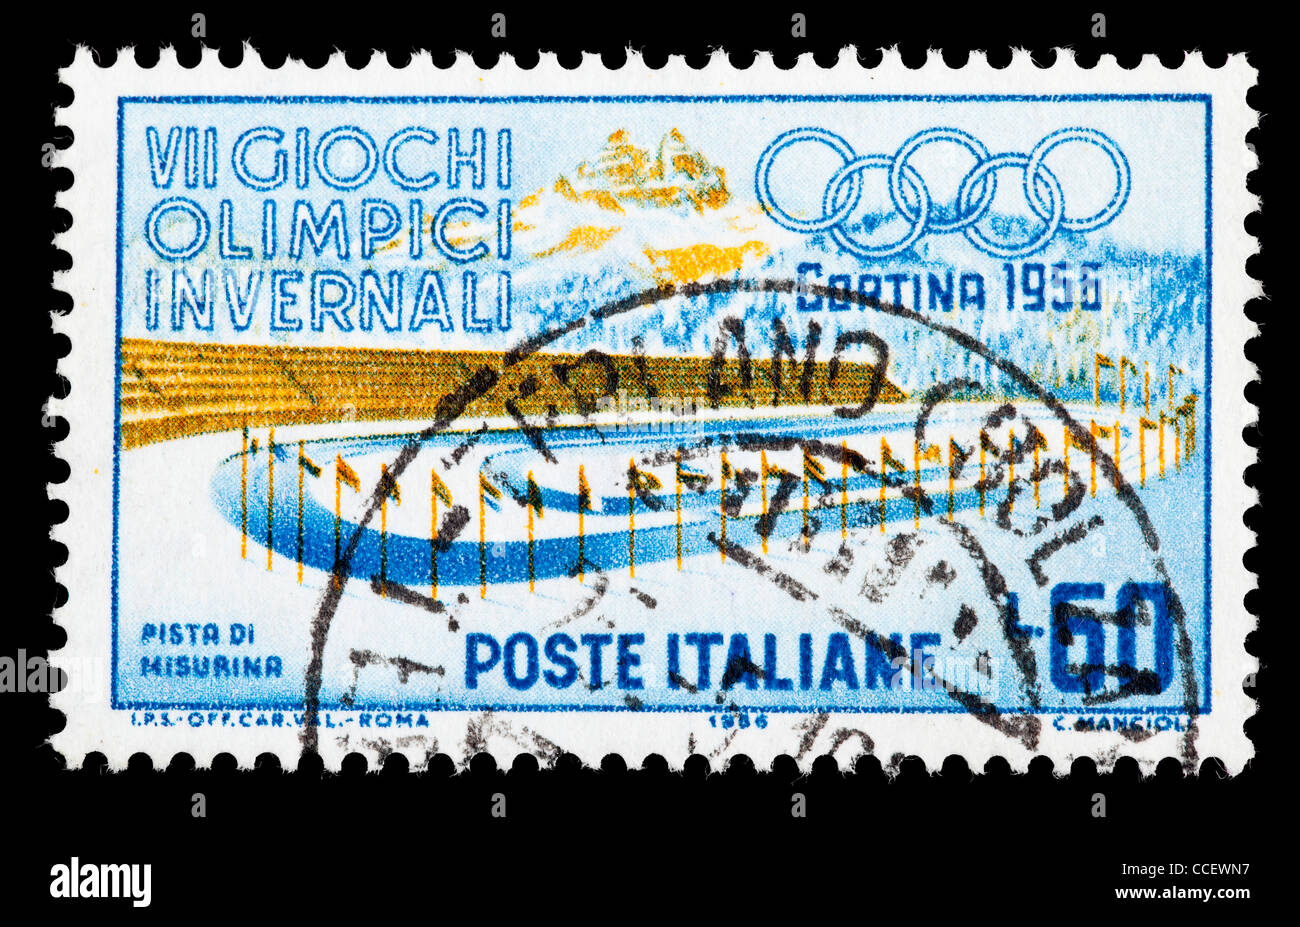 Postage stamp: VII. Olympic Winter Games 1956, Italy, stamped - Stock Image